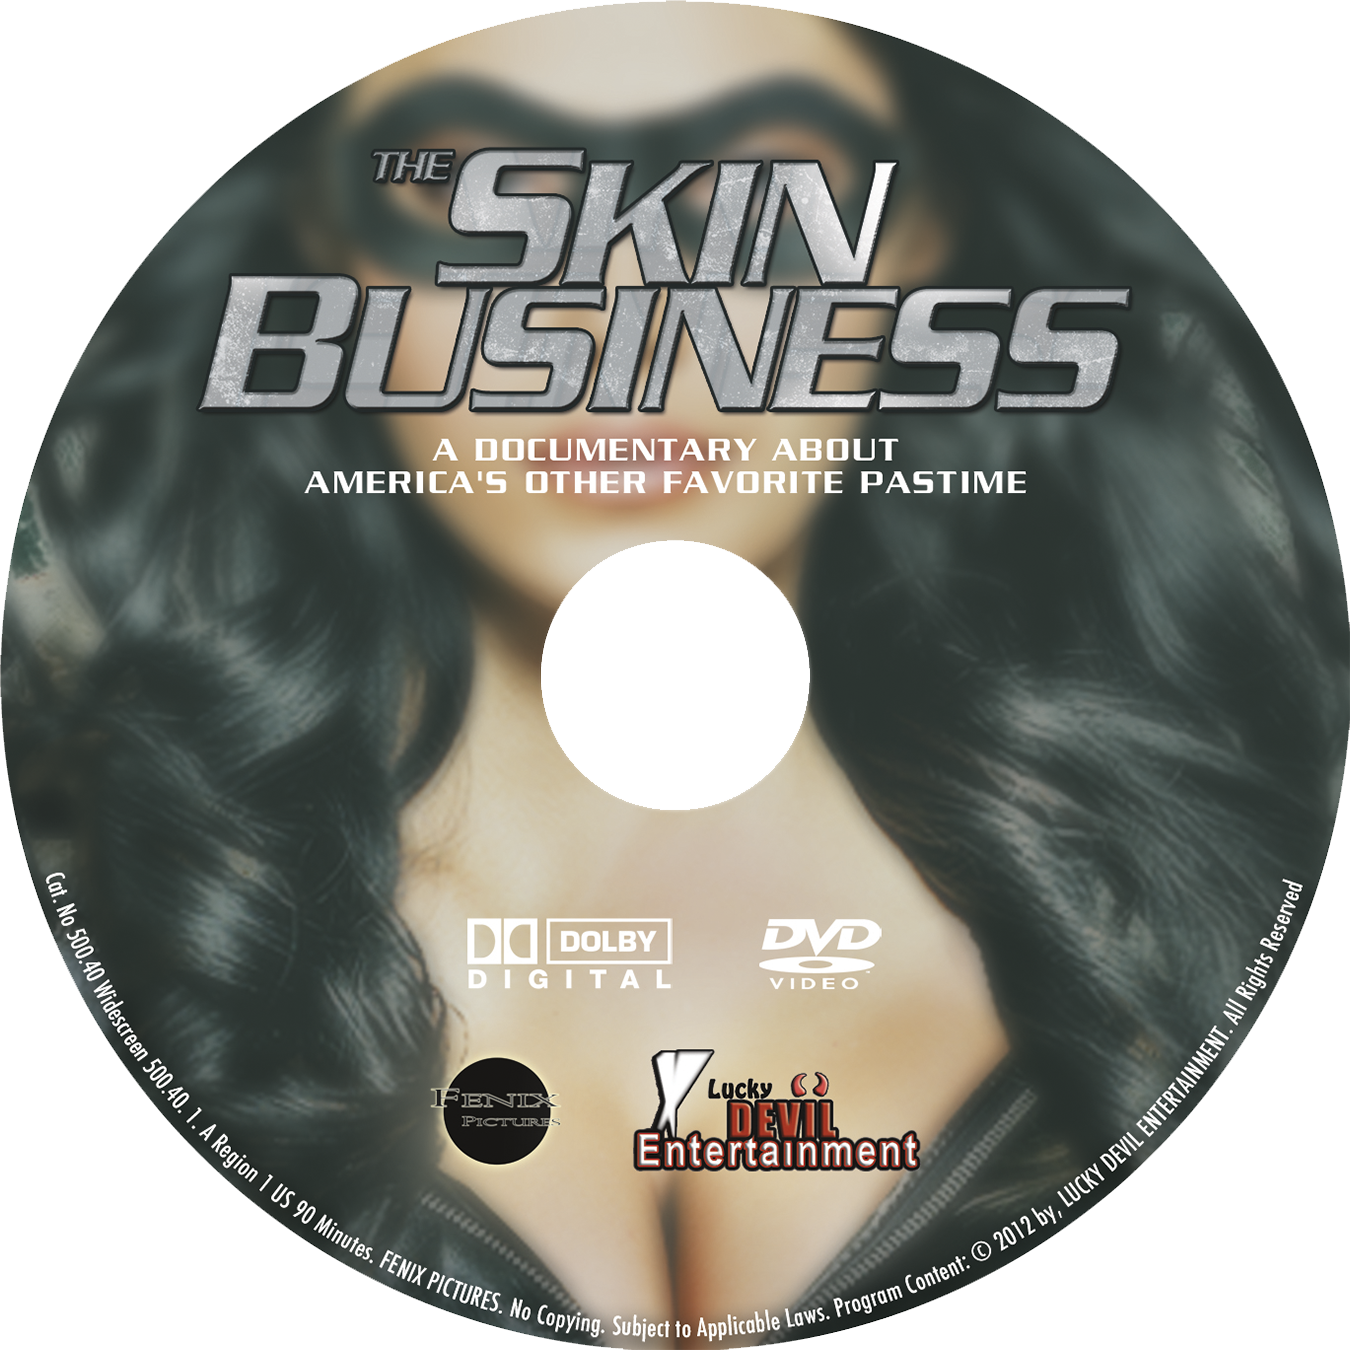 The Skin Business